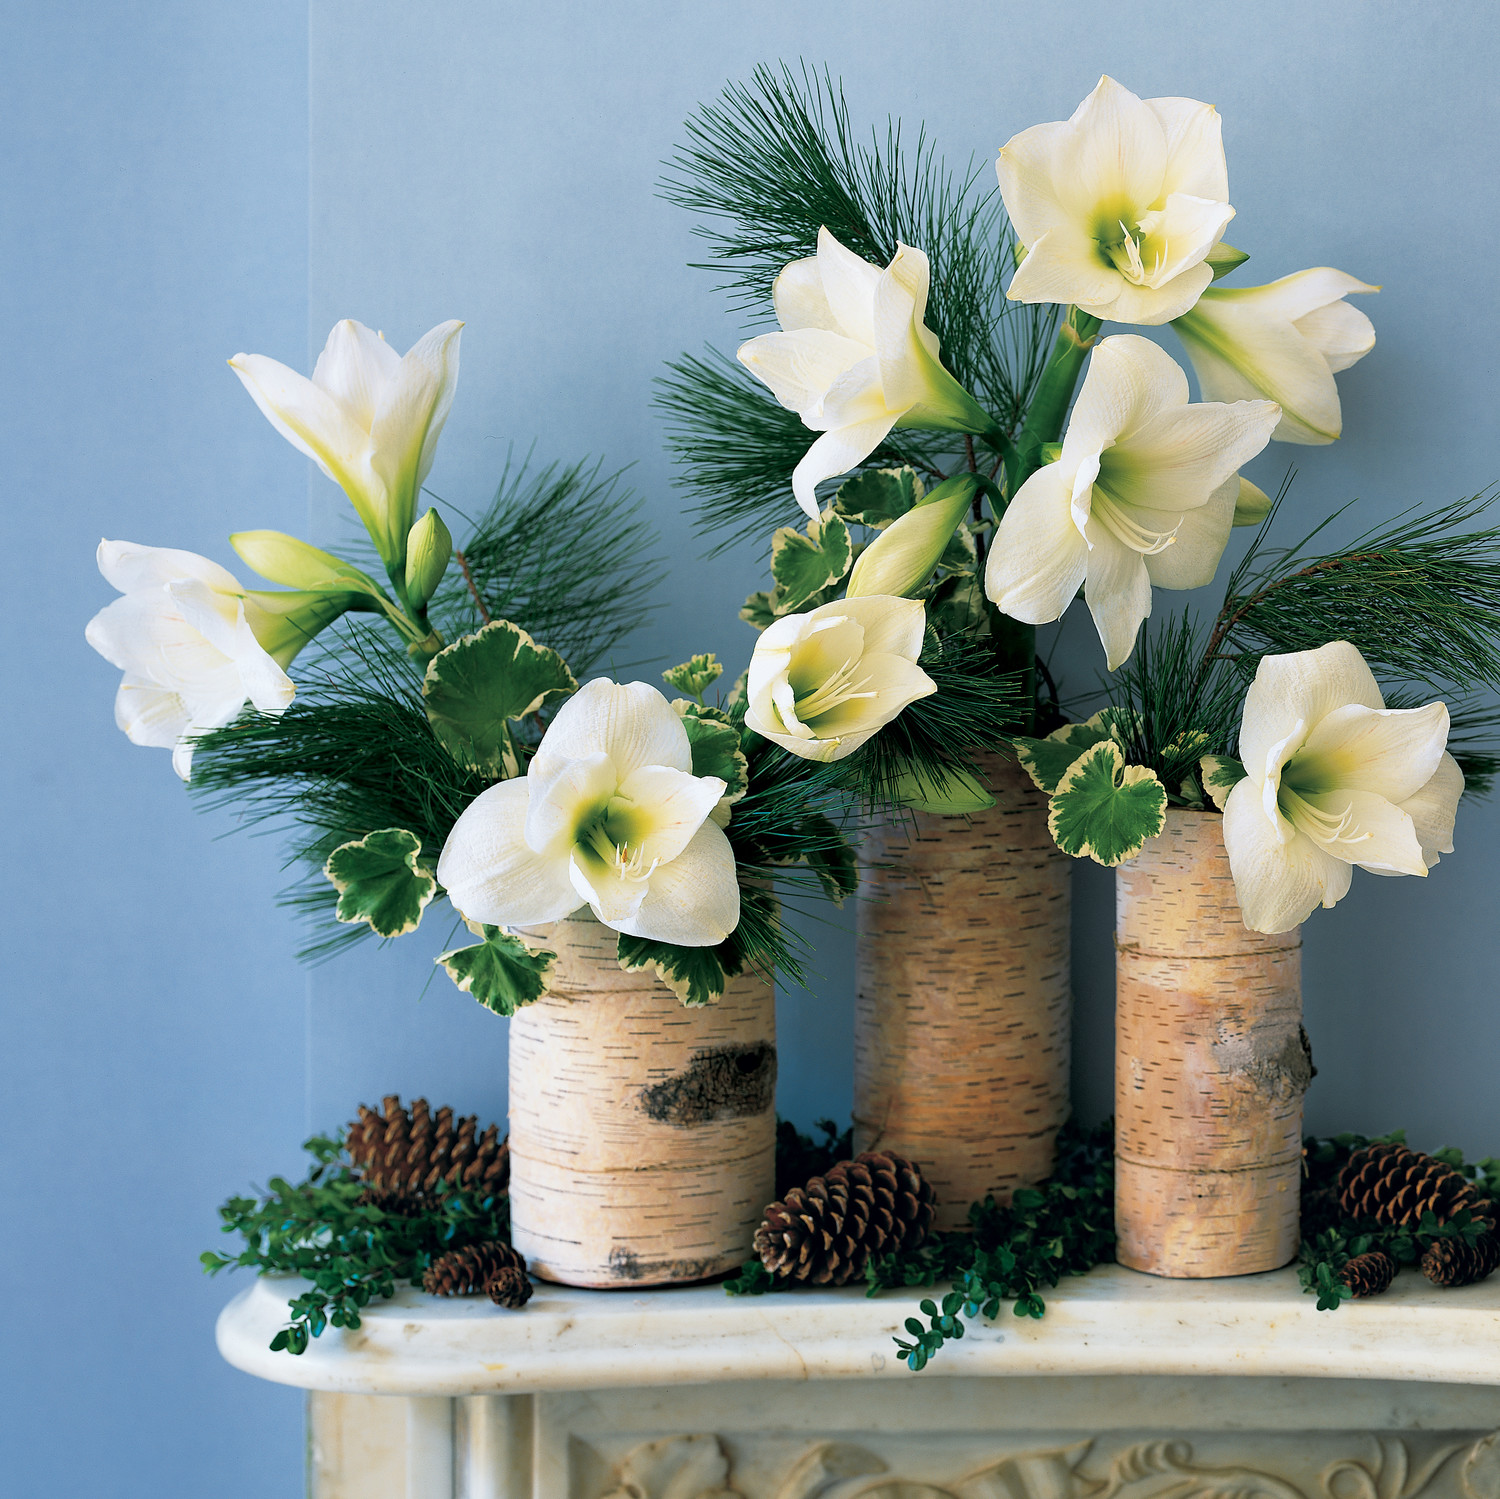 Flower arrangement ideas martha stewart birch arrangement izmirmasajfo